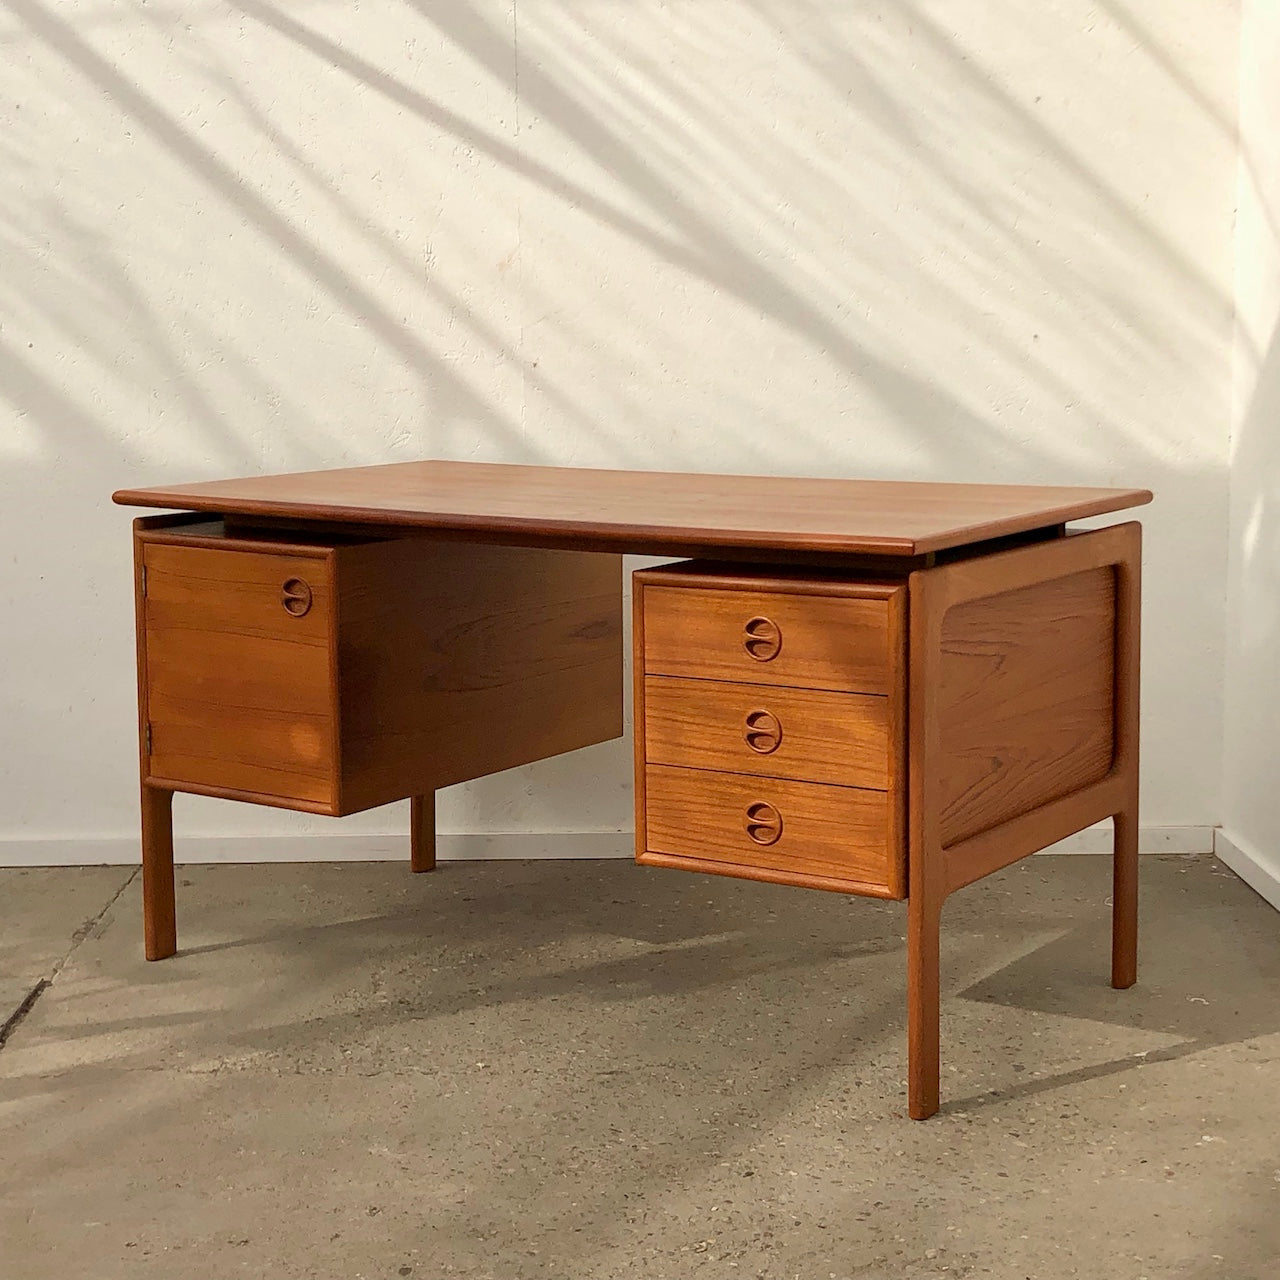 Vintage Danish Desk by Arne Vodder for GV Mobler, 1960s